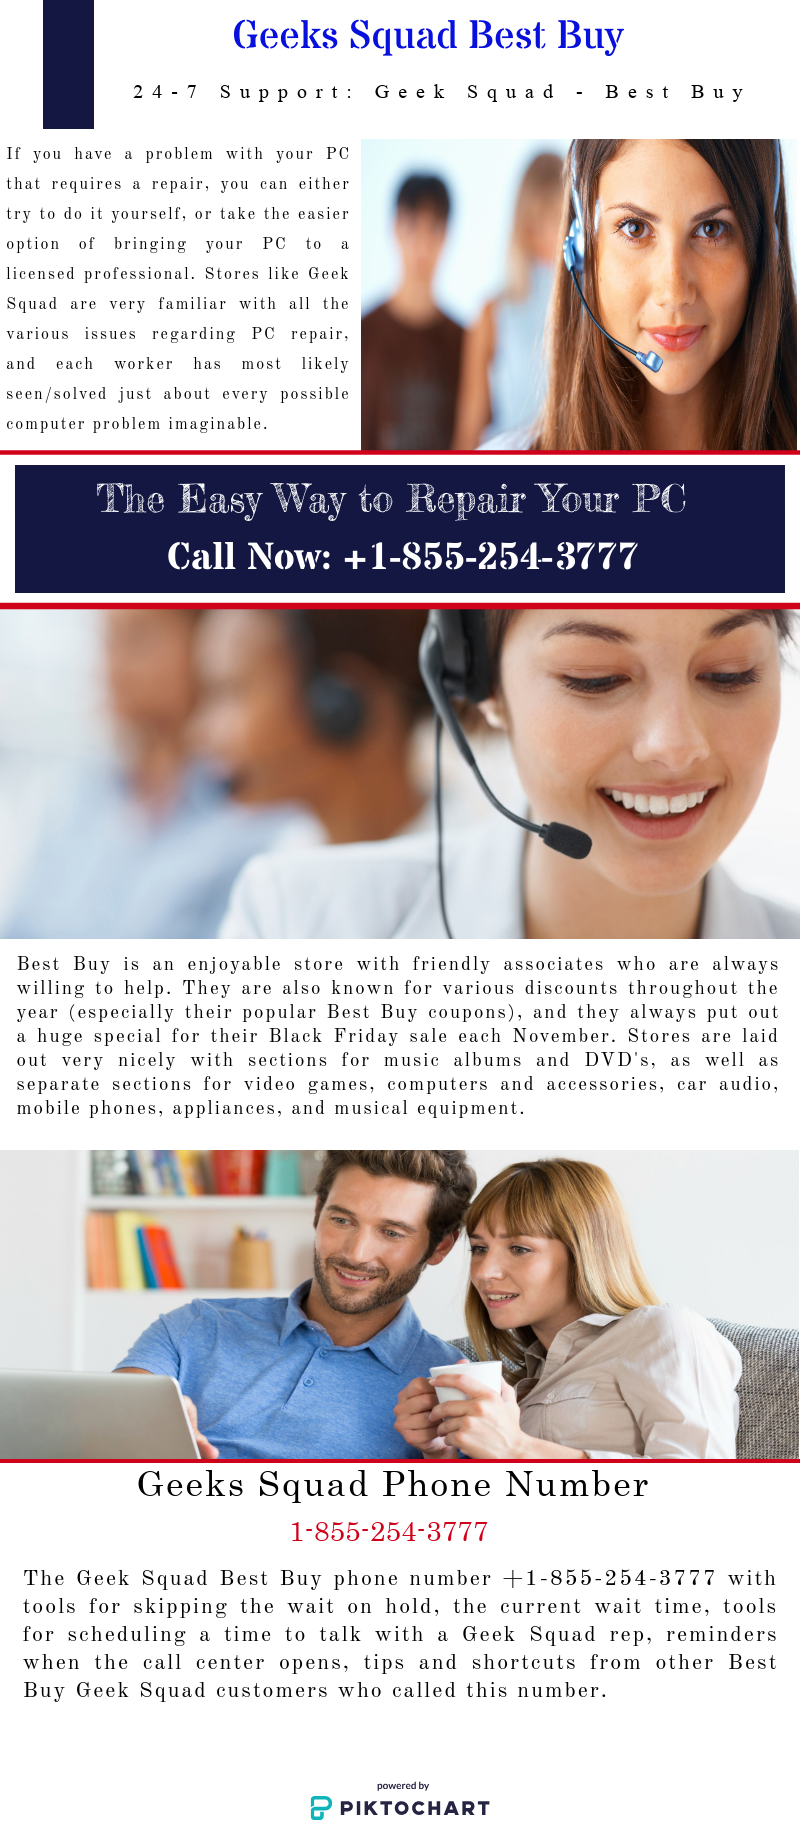 Geek Squad Best Buy Provides Geek Squad Phone Number And Geek Squad Services Just By Dialing  3777 Geek Squad Number Call Best Buy Geek Squad Now